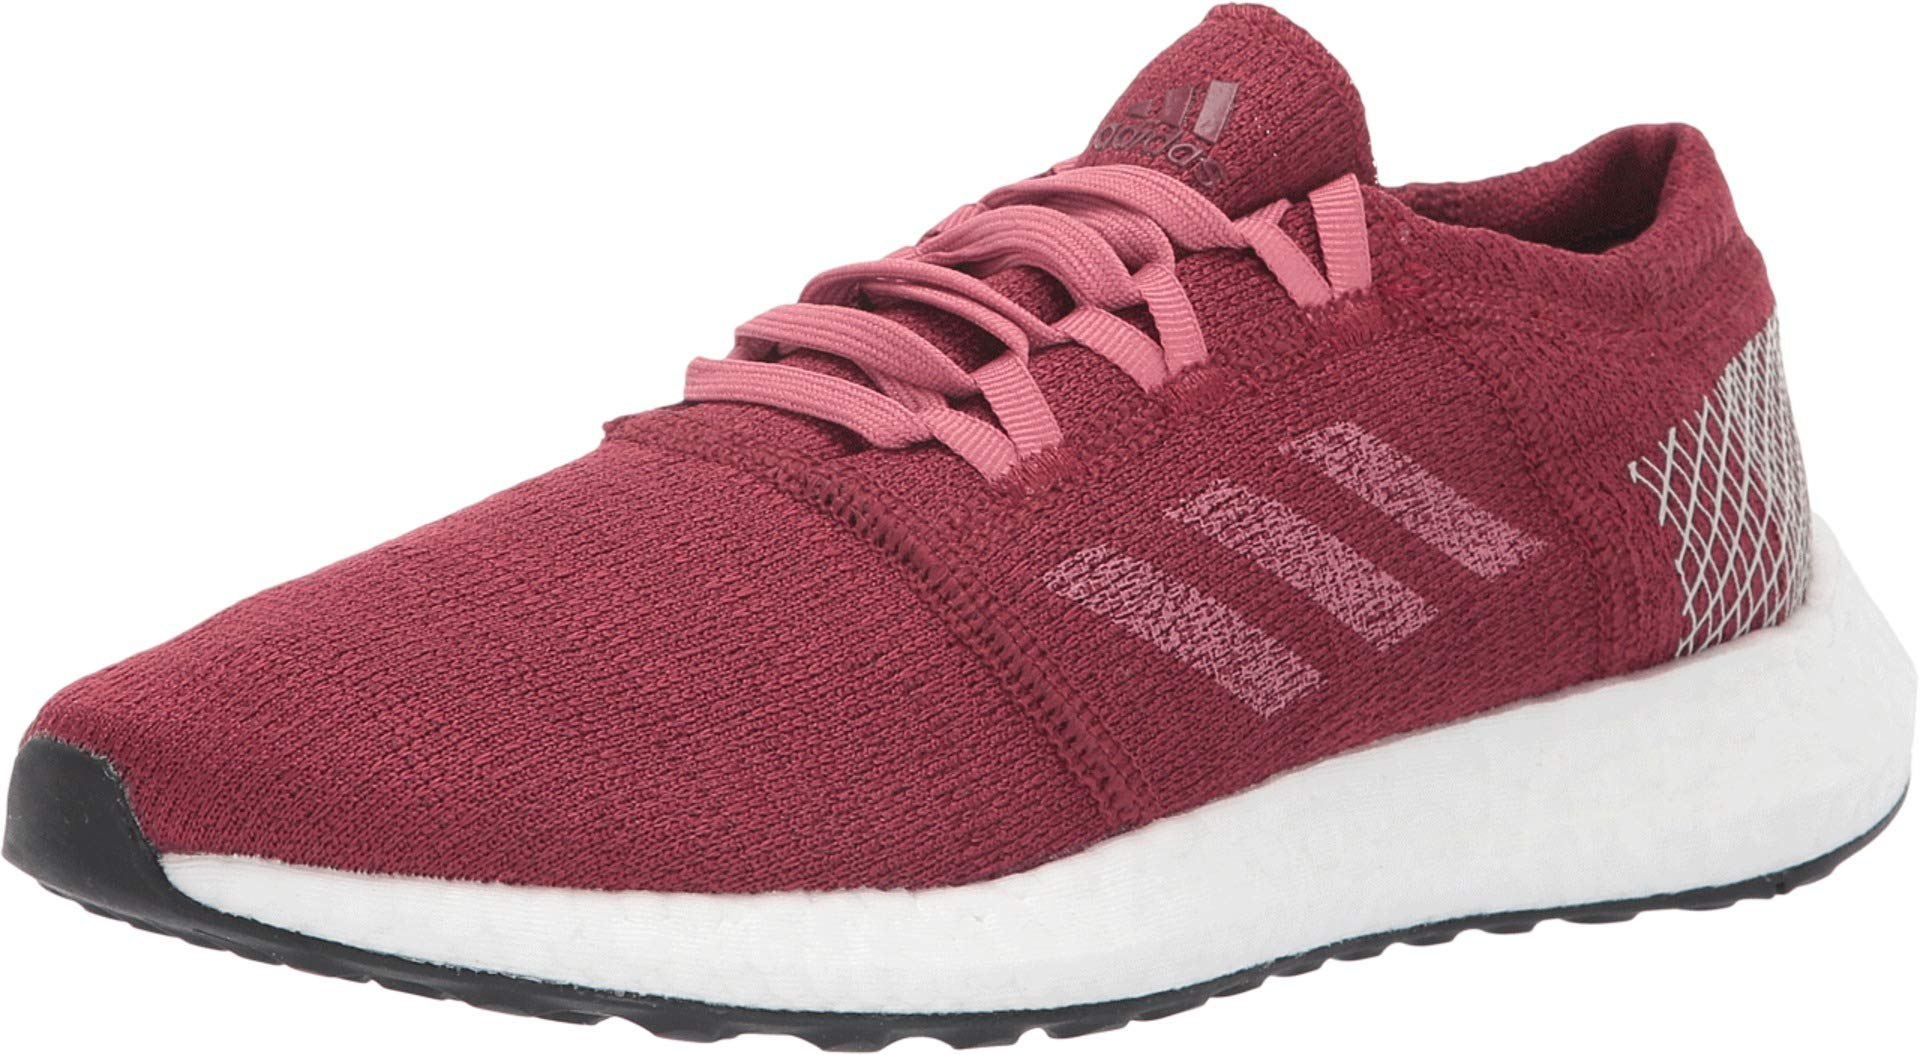 adidas Running Women's Pureboost Element Noble Maroon/Trace Maroon/Clear Brown 5 B US